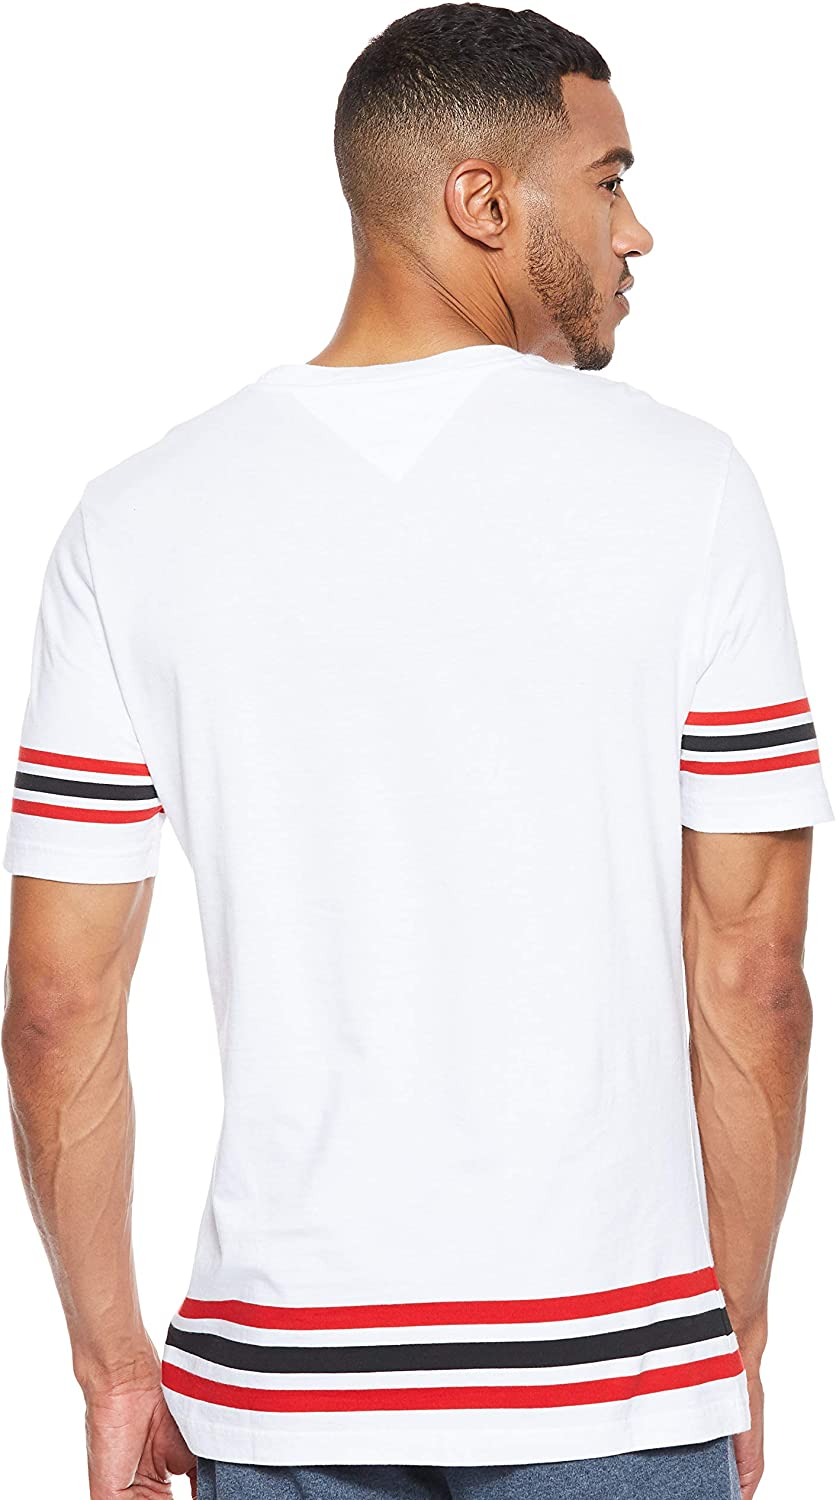 TOMMY HILFIGER Men - Cotton white stripe logo T-Shirt - Size S ...